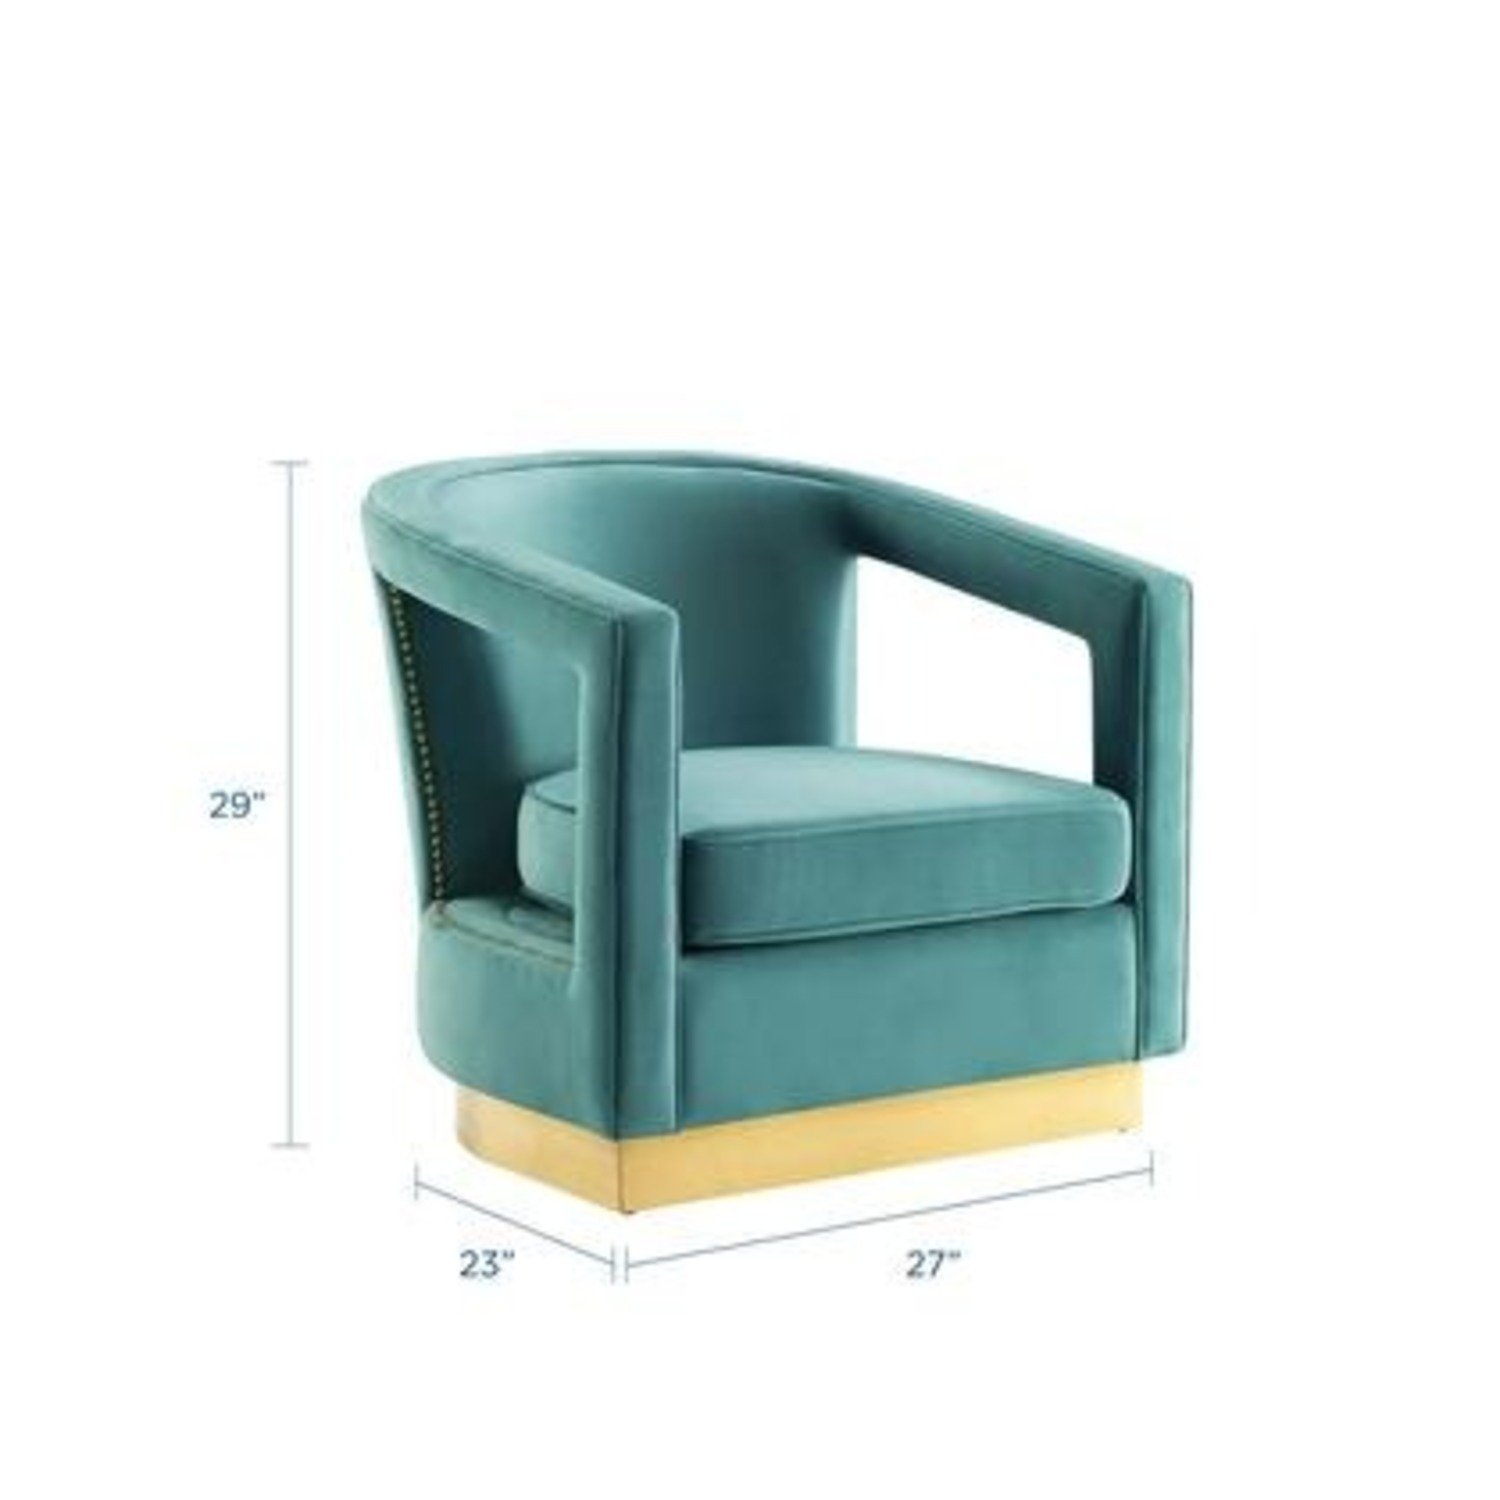 Glam Deco Style Armchair In Mint Velvet Fabric - image-7